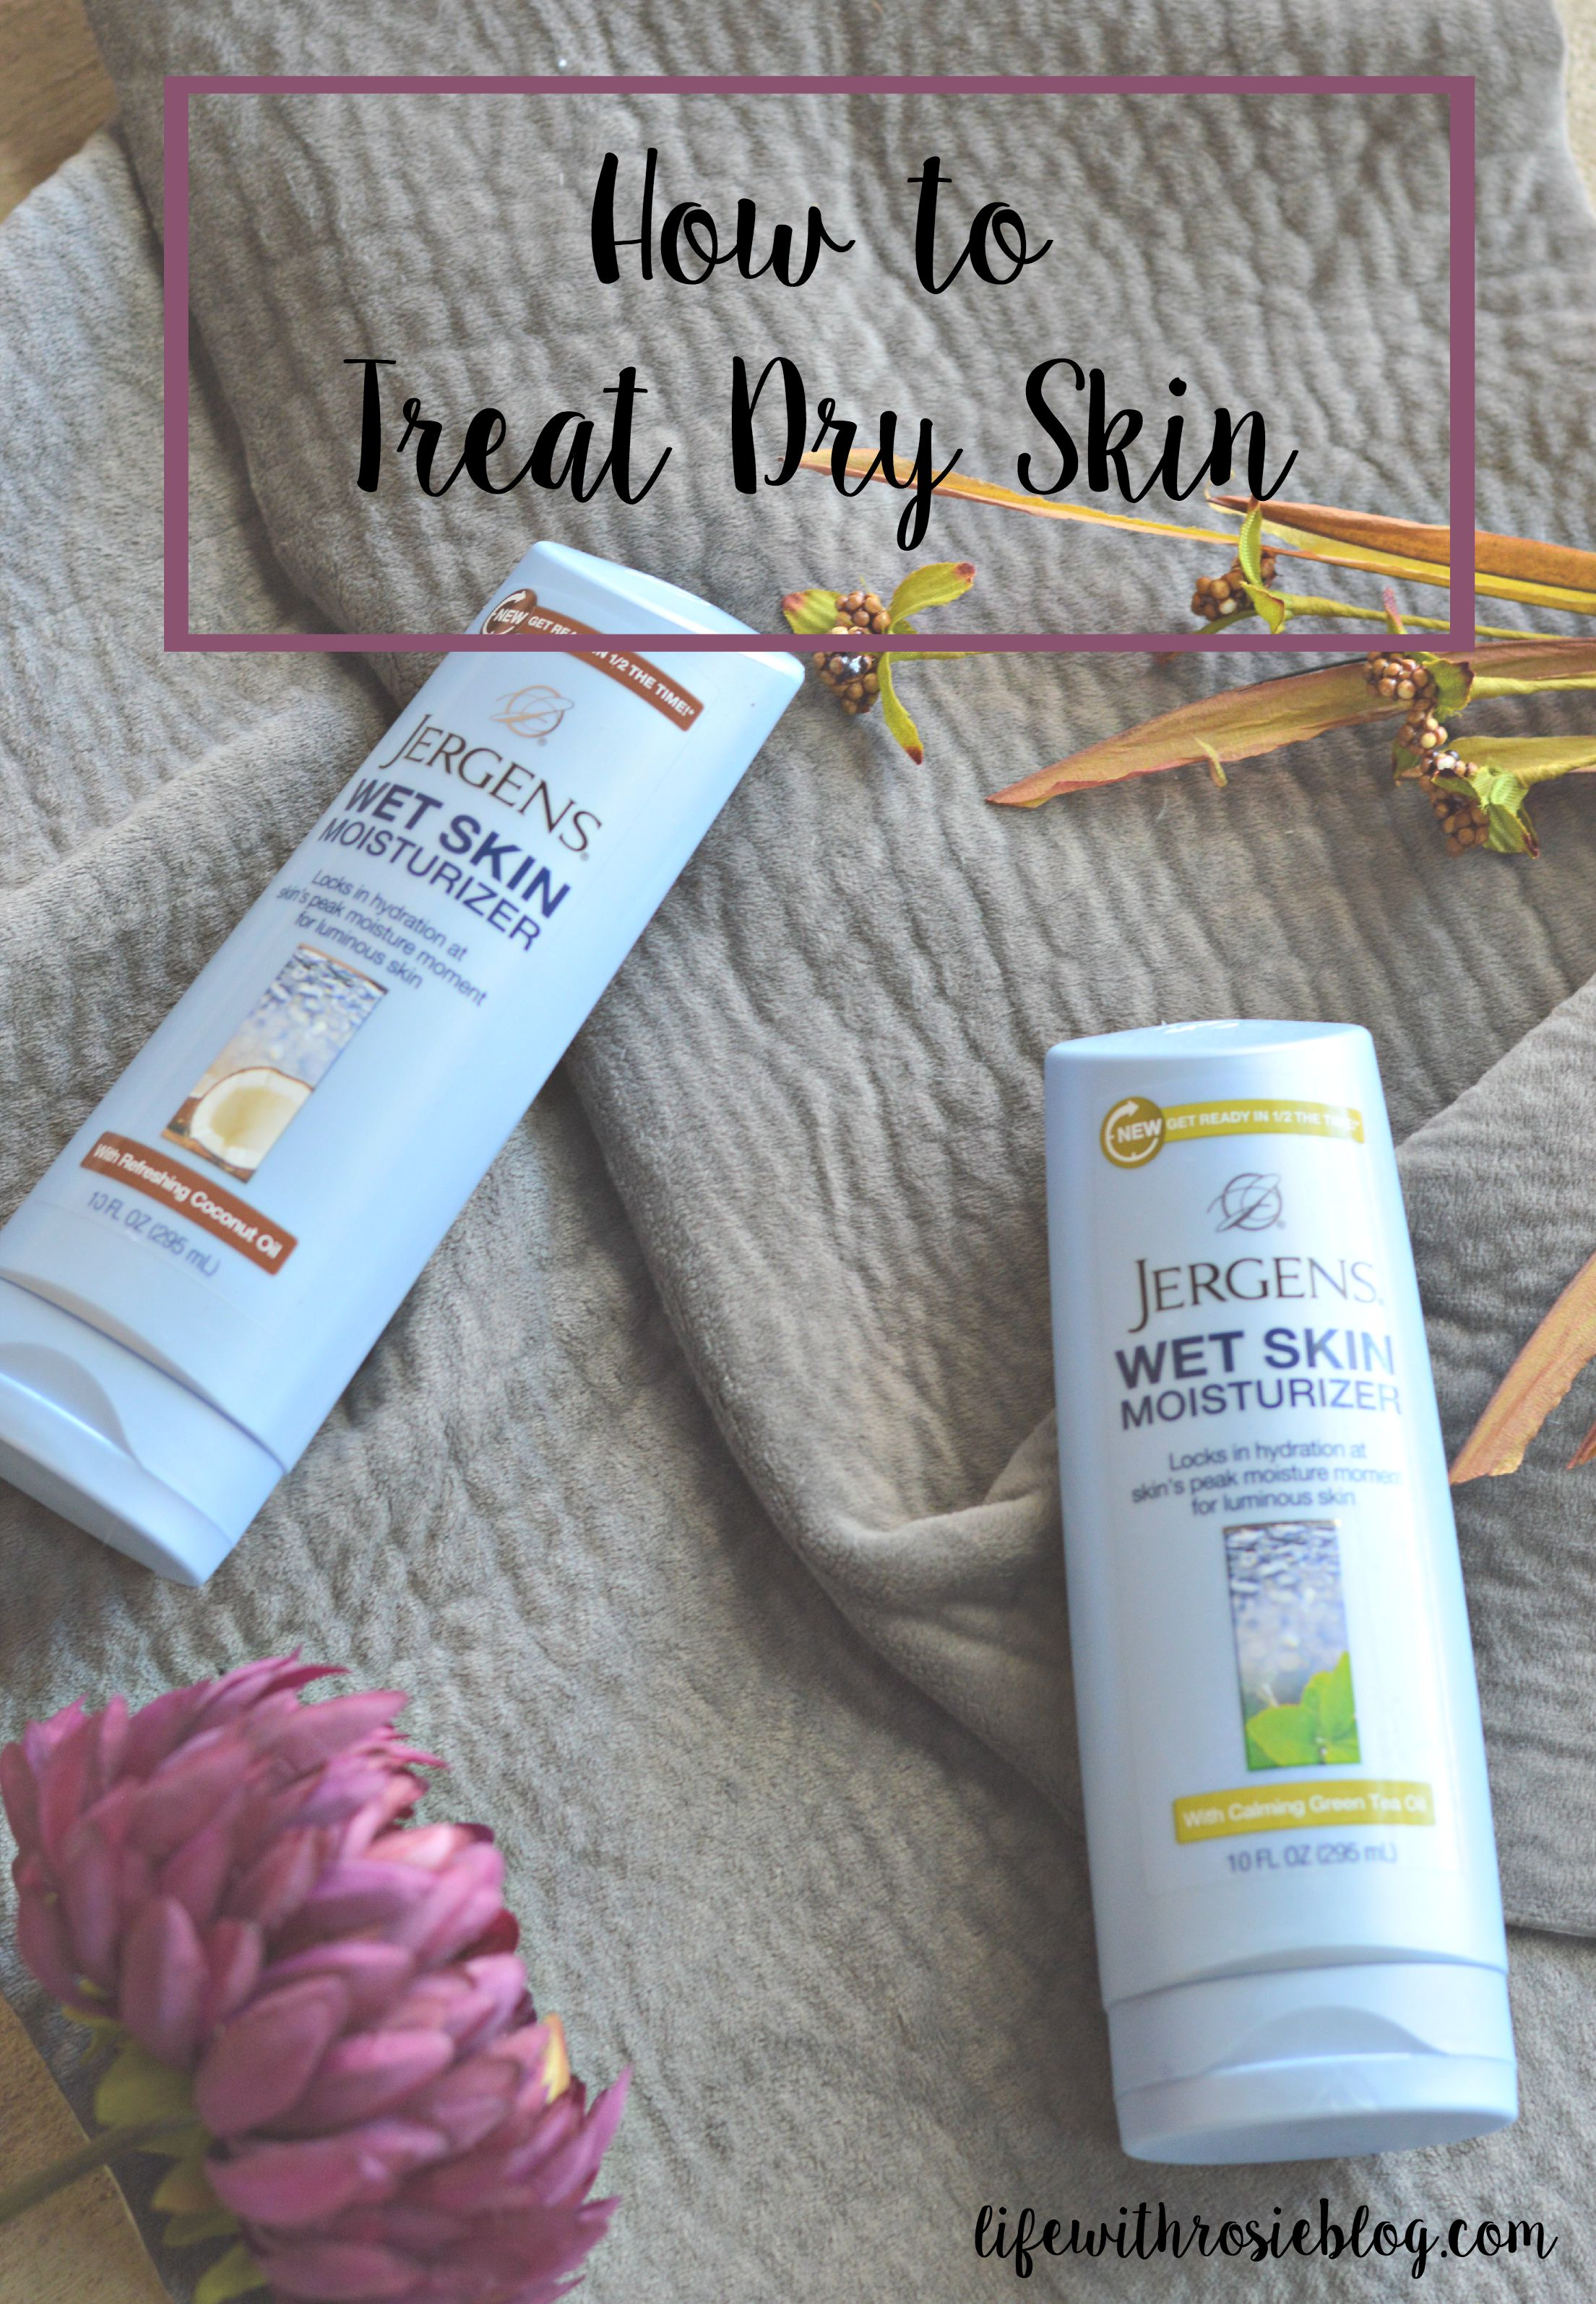 How to Treat Dry Skin using Jergens Wet Skin Moisturizer #ad #applybeforeyourdry // Life with Rosie